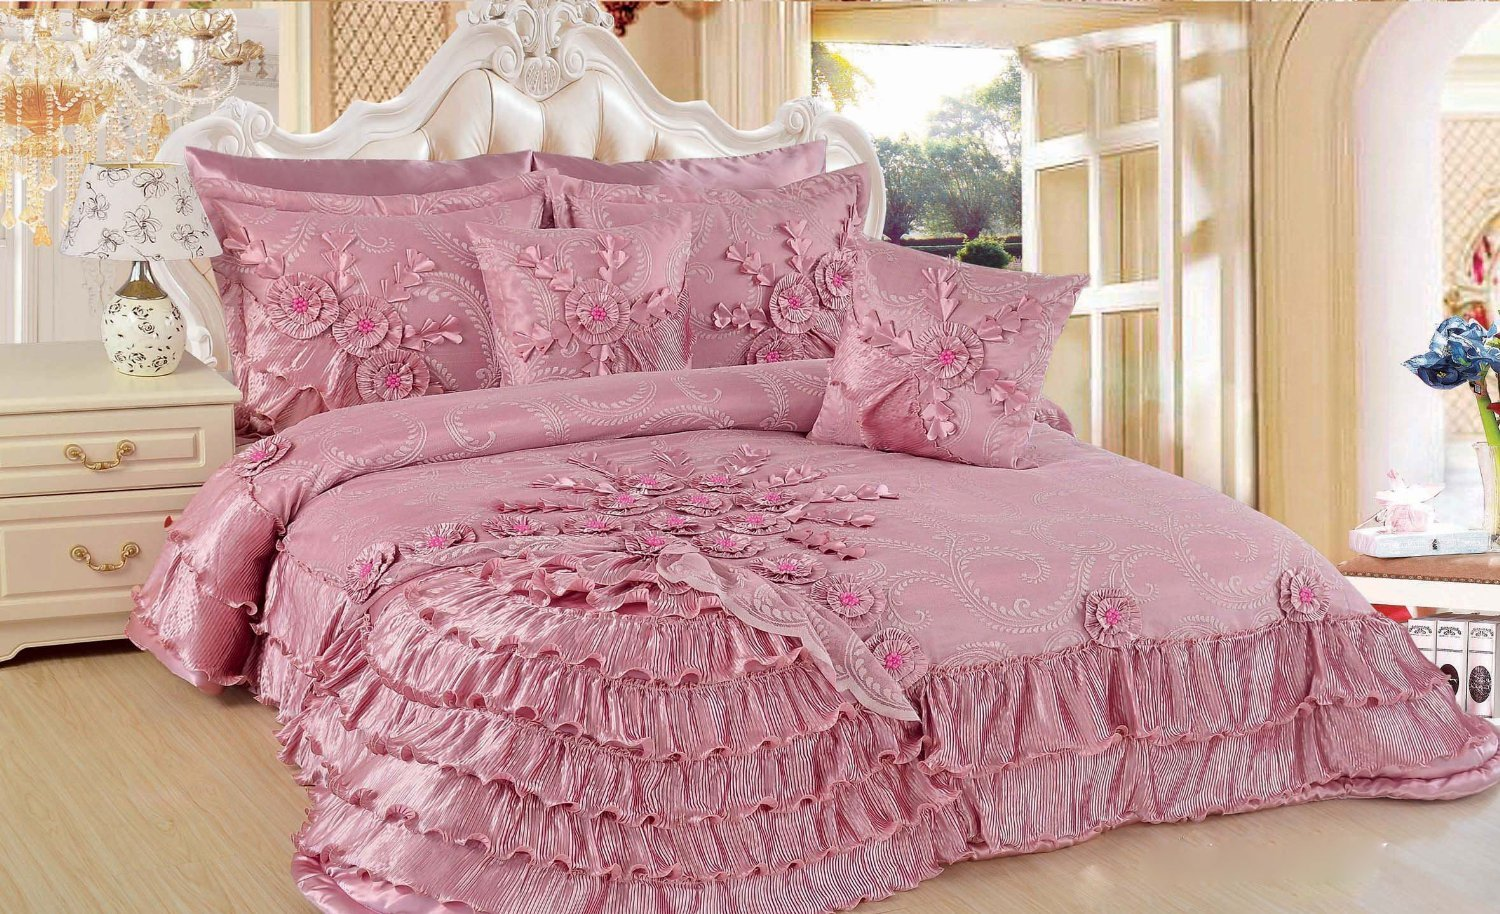 Preferred Amazon.com: DaDa Bedding BM1227 5-Piece Blooming Comforter Set  GO42